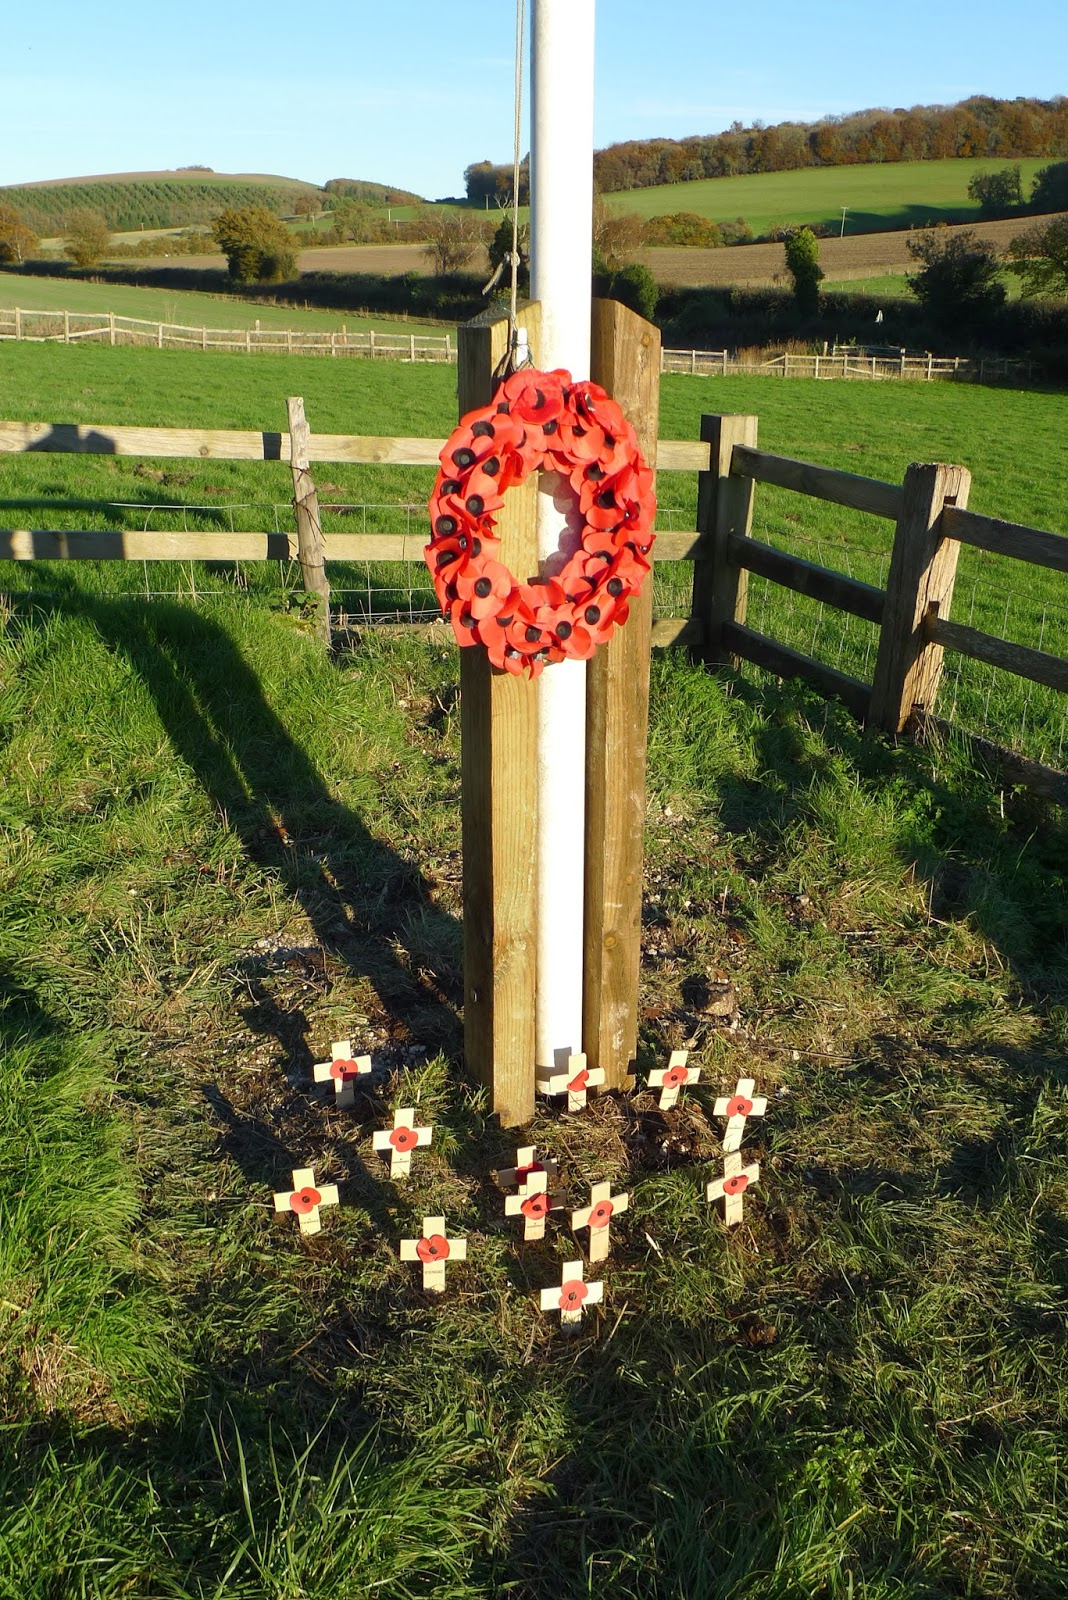 lucy melford weddings in wellies and two wartime tragedies